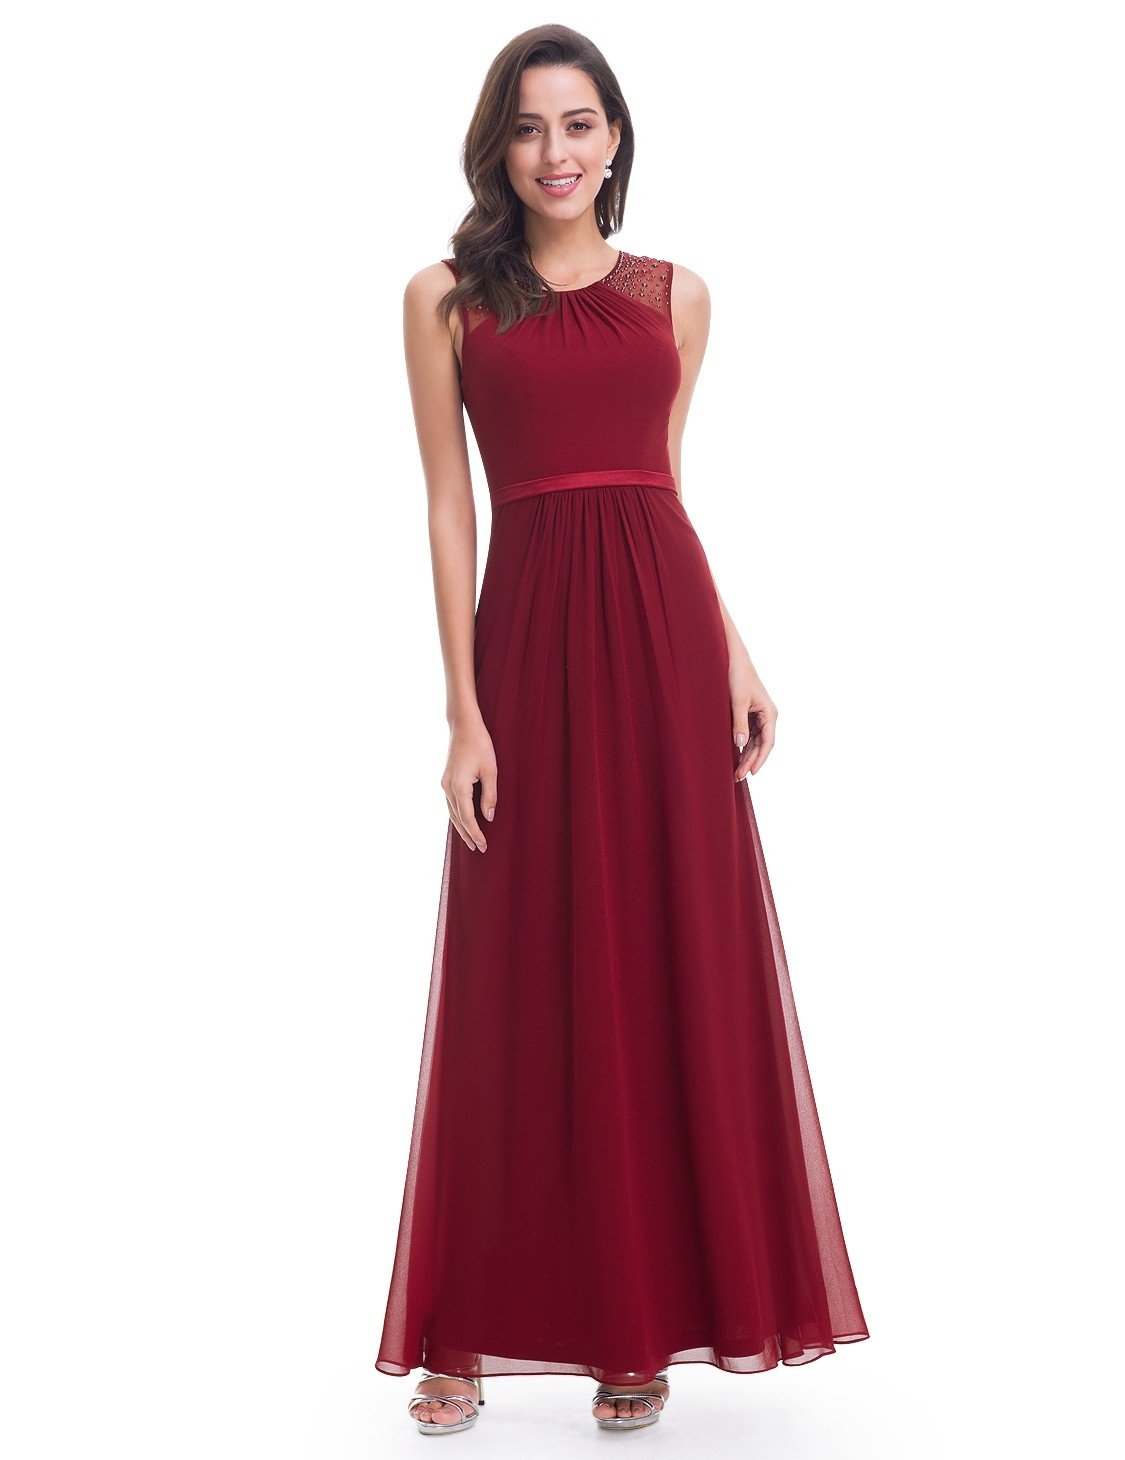 red-bridesmaid-dress-style-3